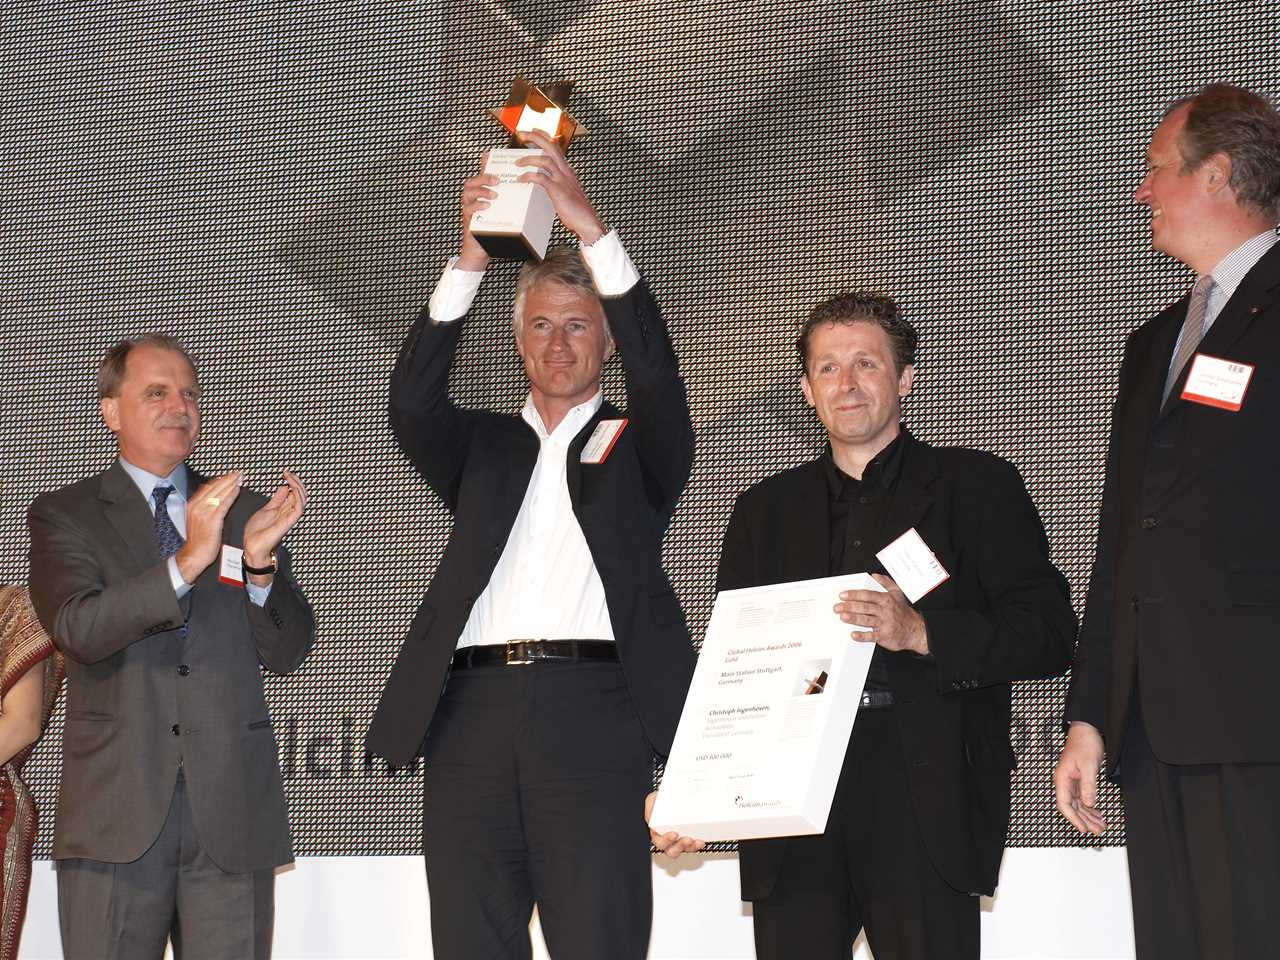 Global Holcim Awards Ceremony 2006 – Bangkok, Thailand